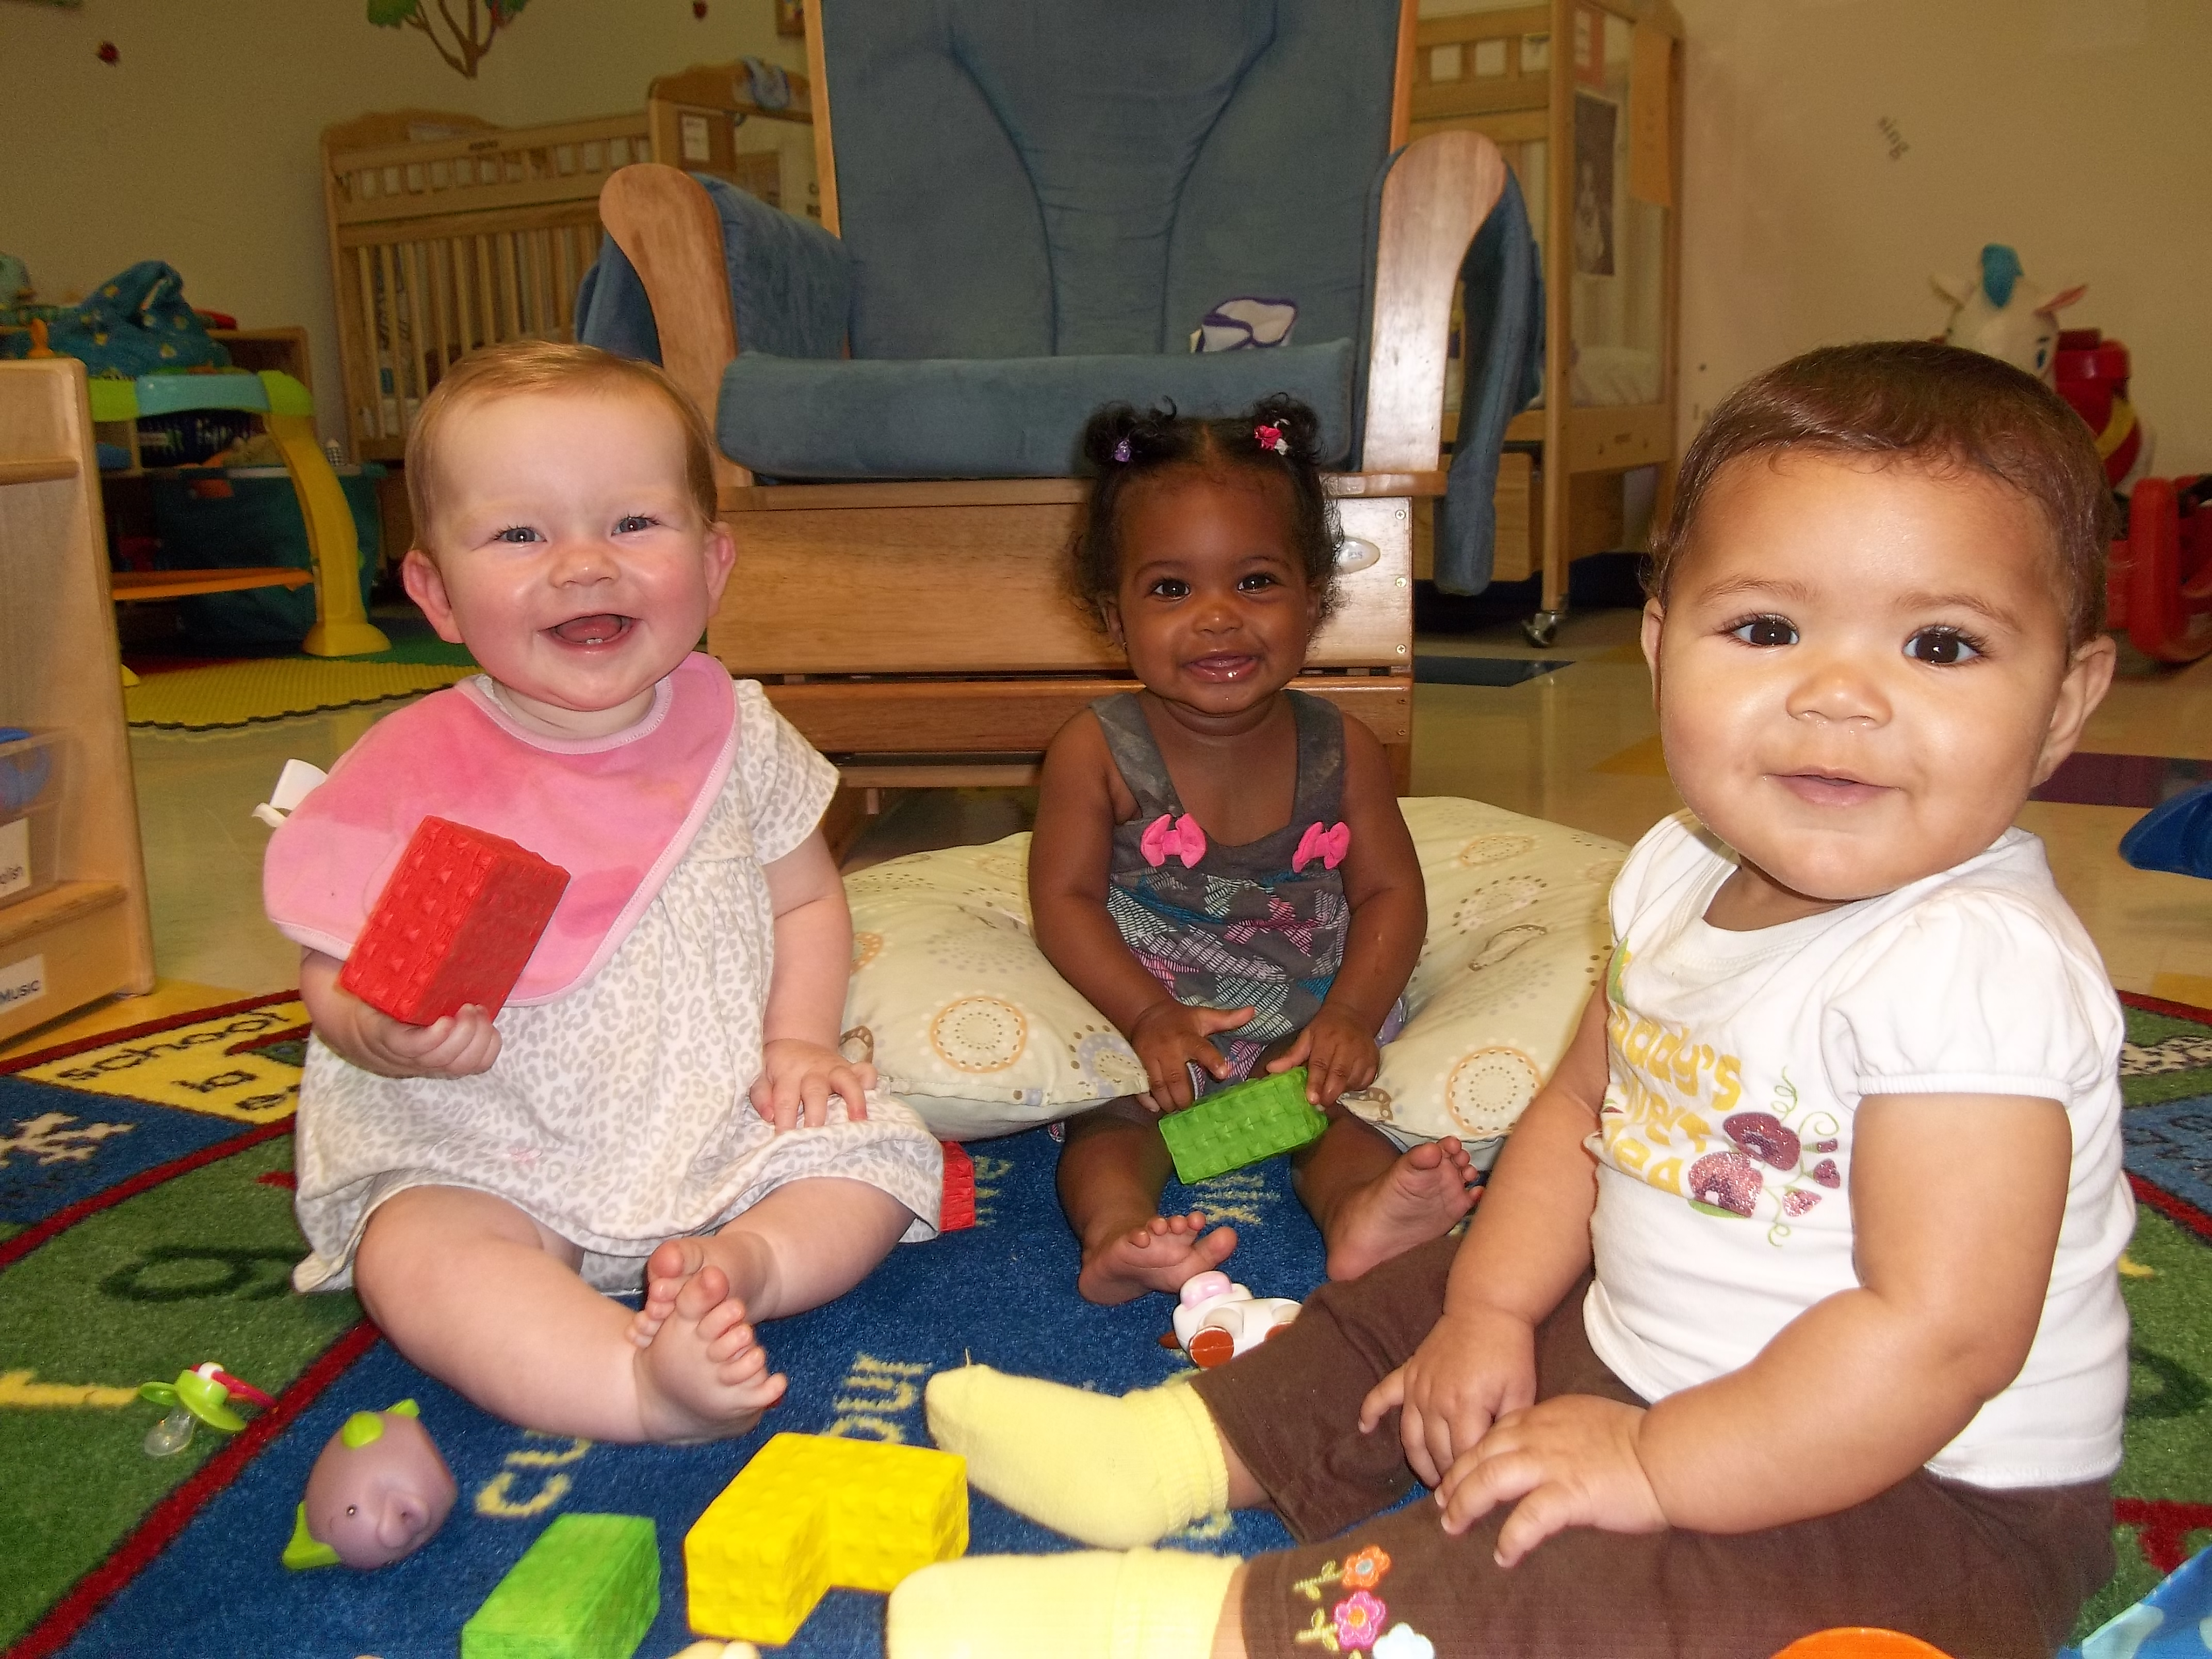 Child Care Pike Township The Day Nursery Indianapolis